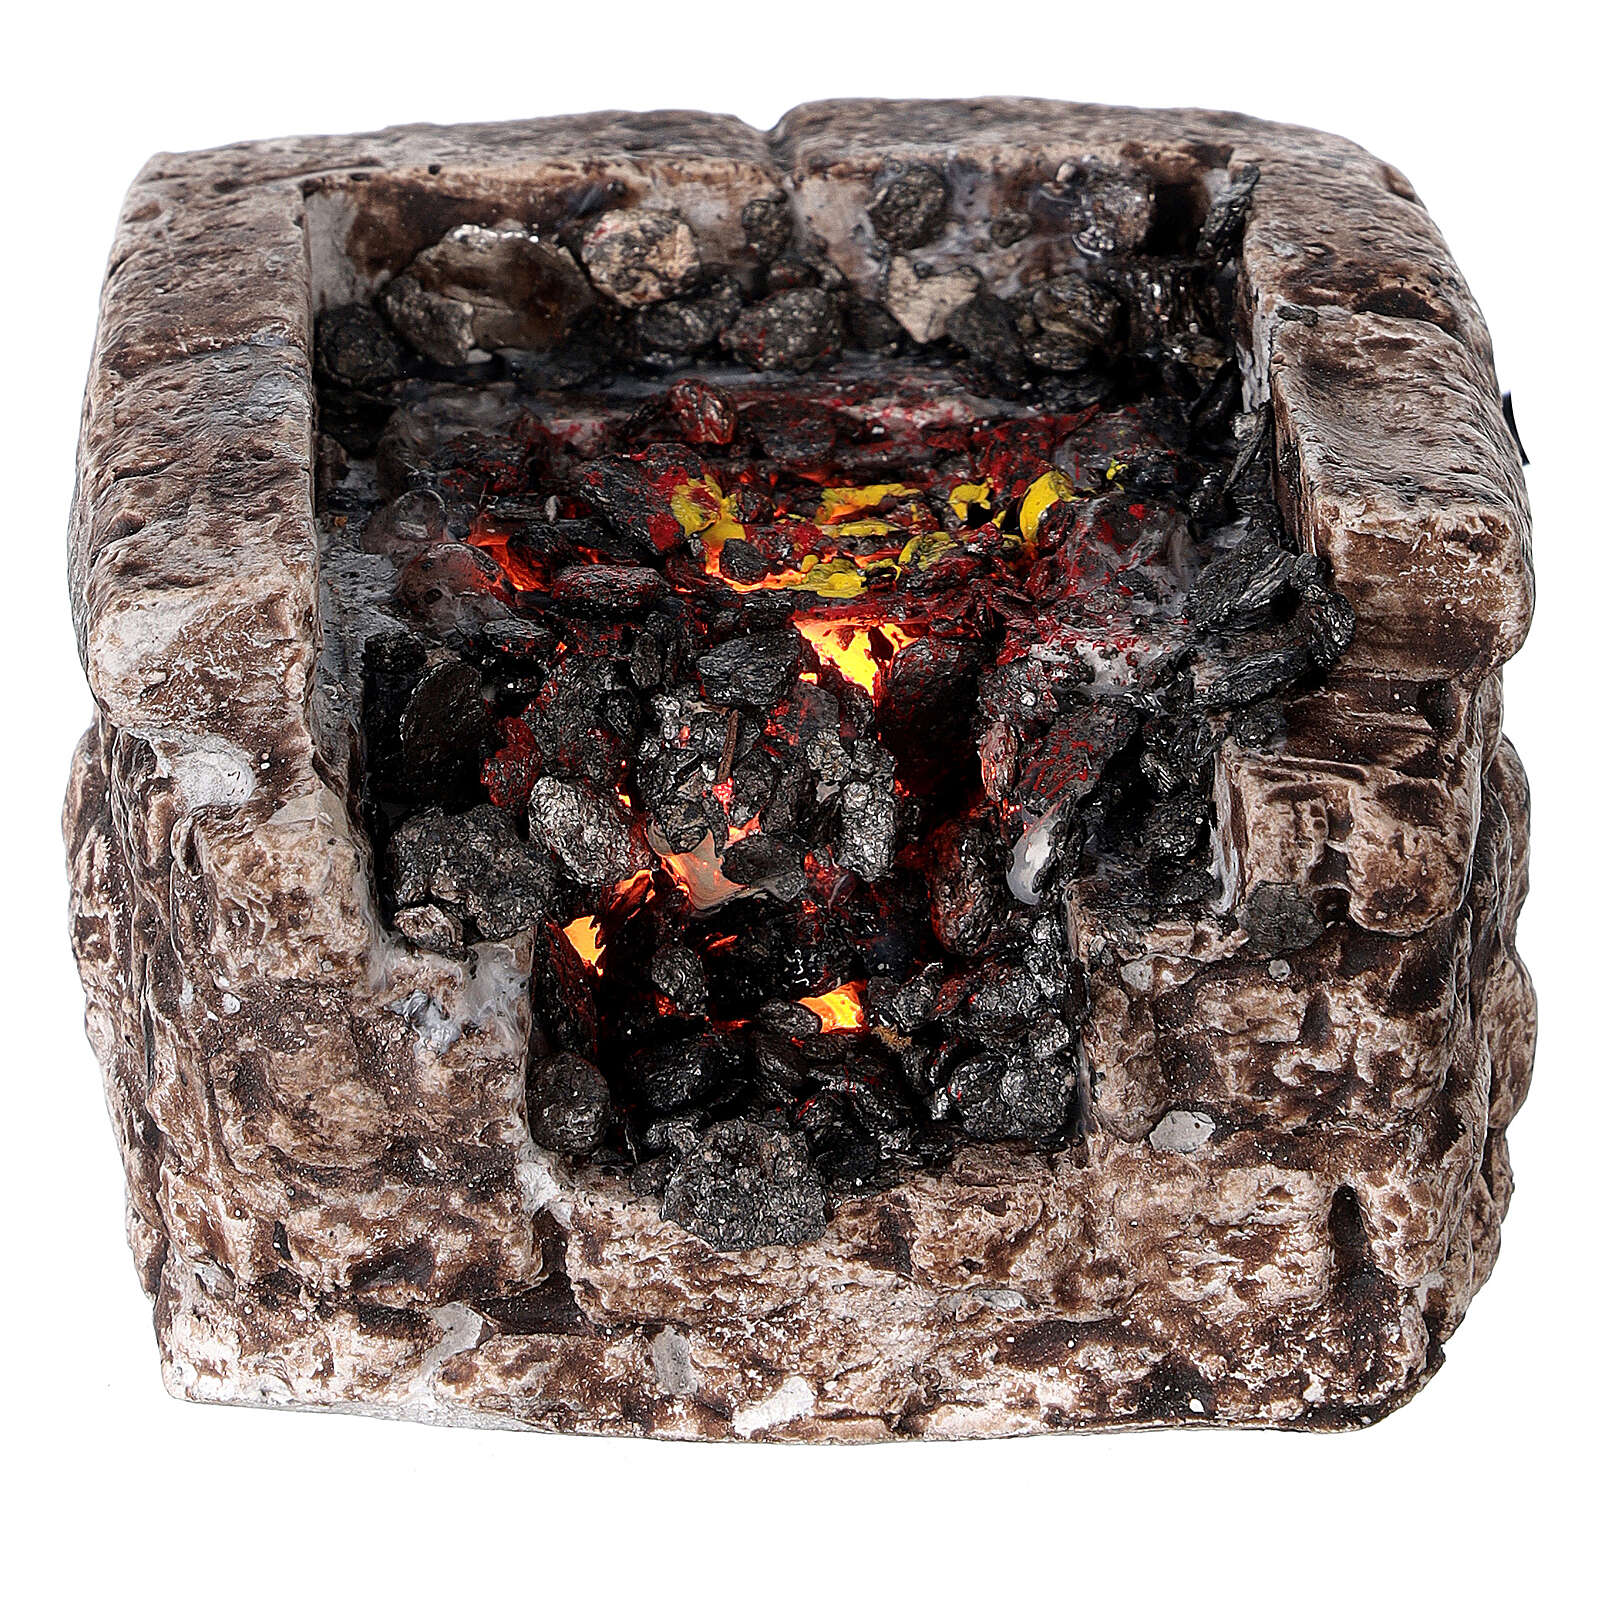 Fire with light for Nativity scene 5x10x10 cm 4